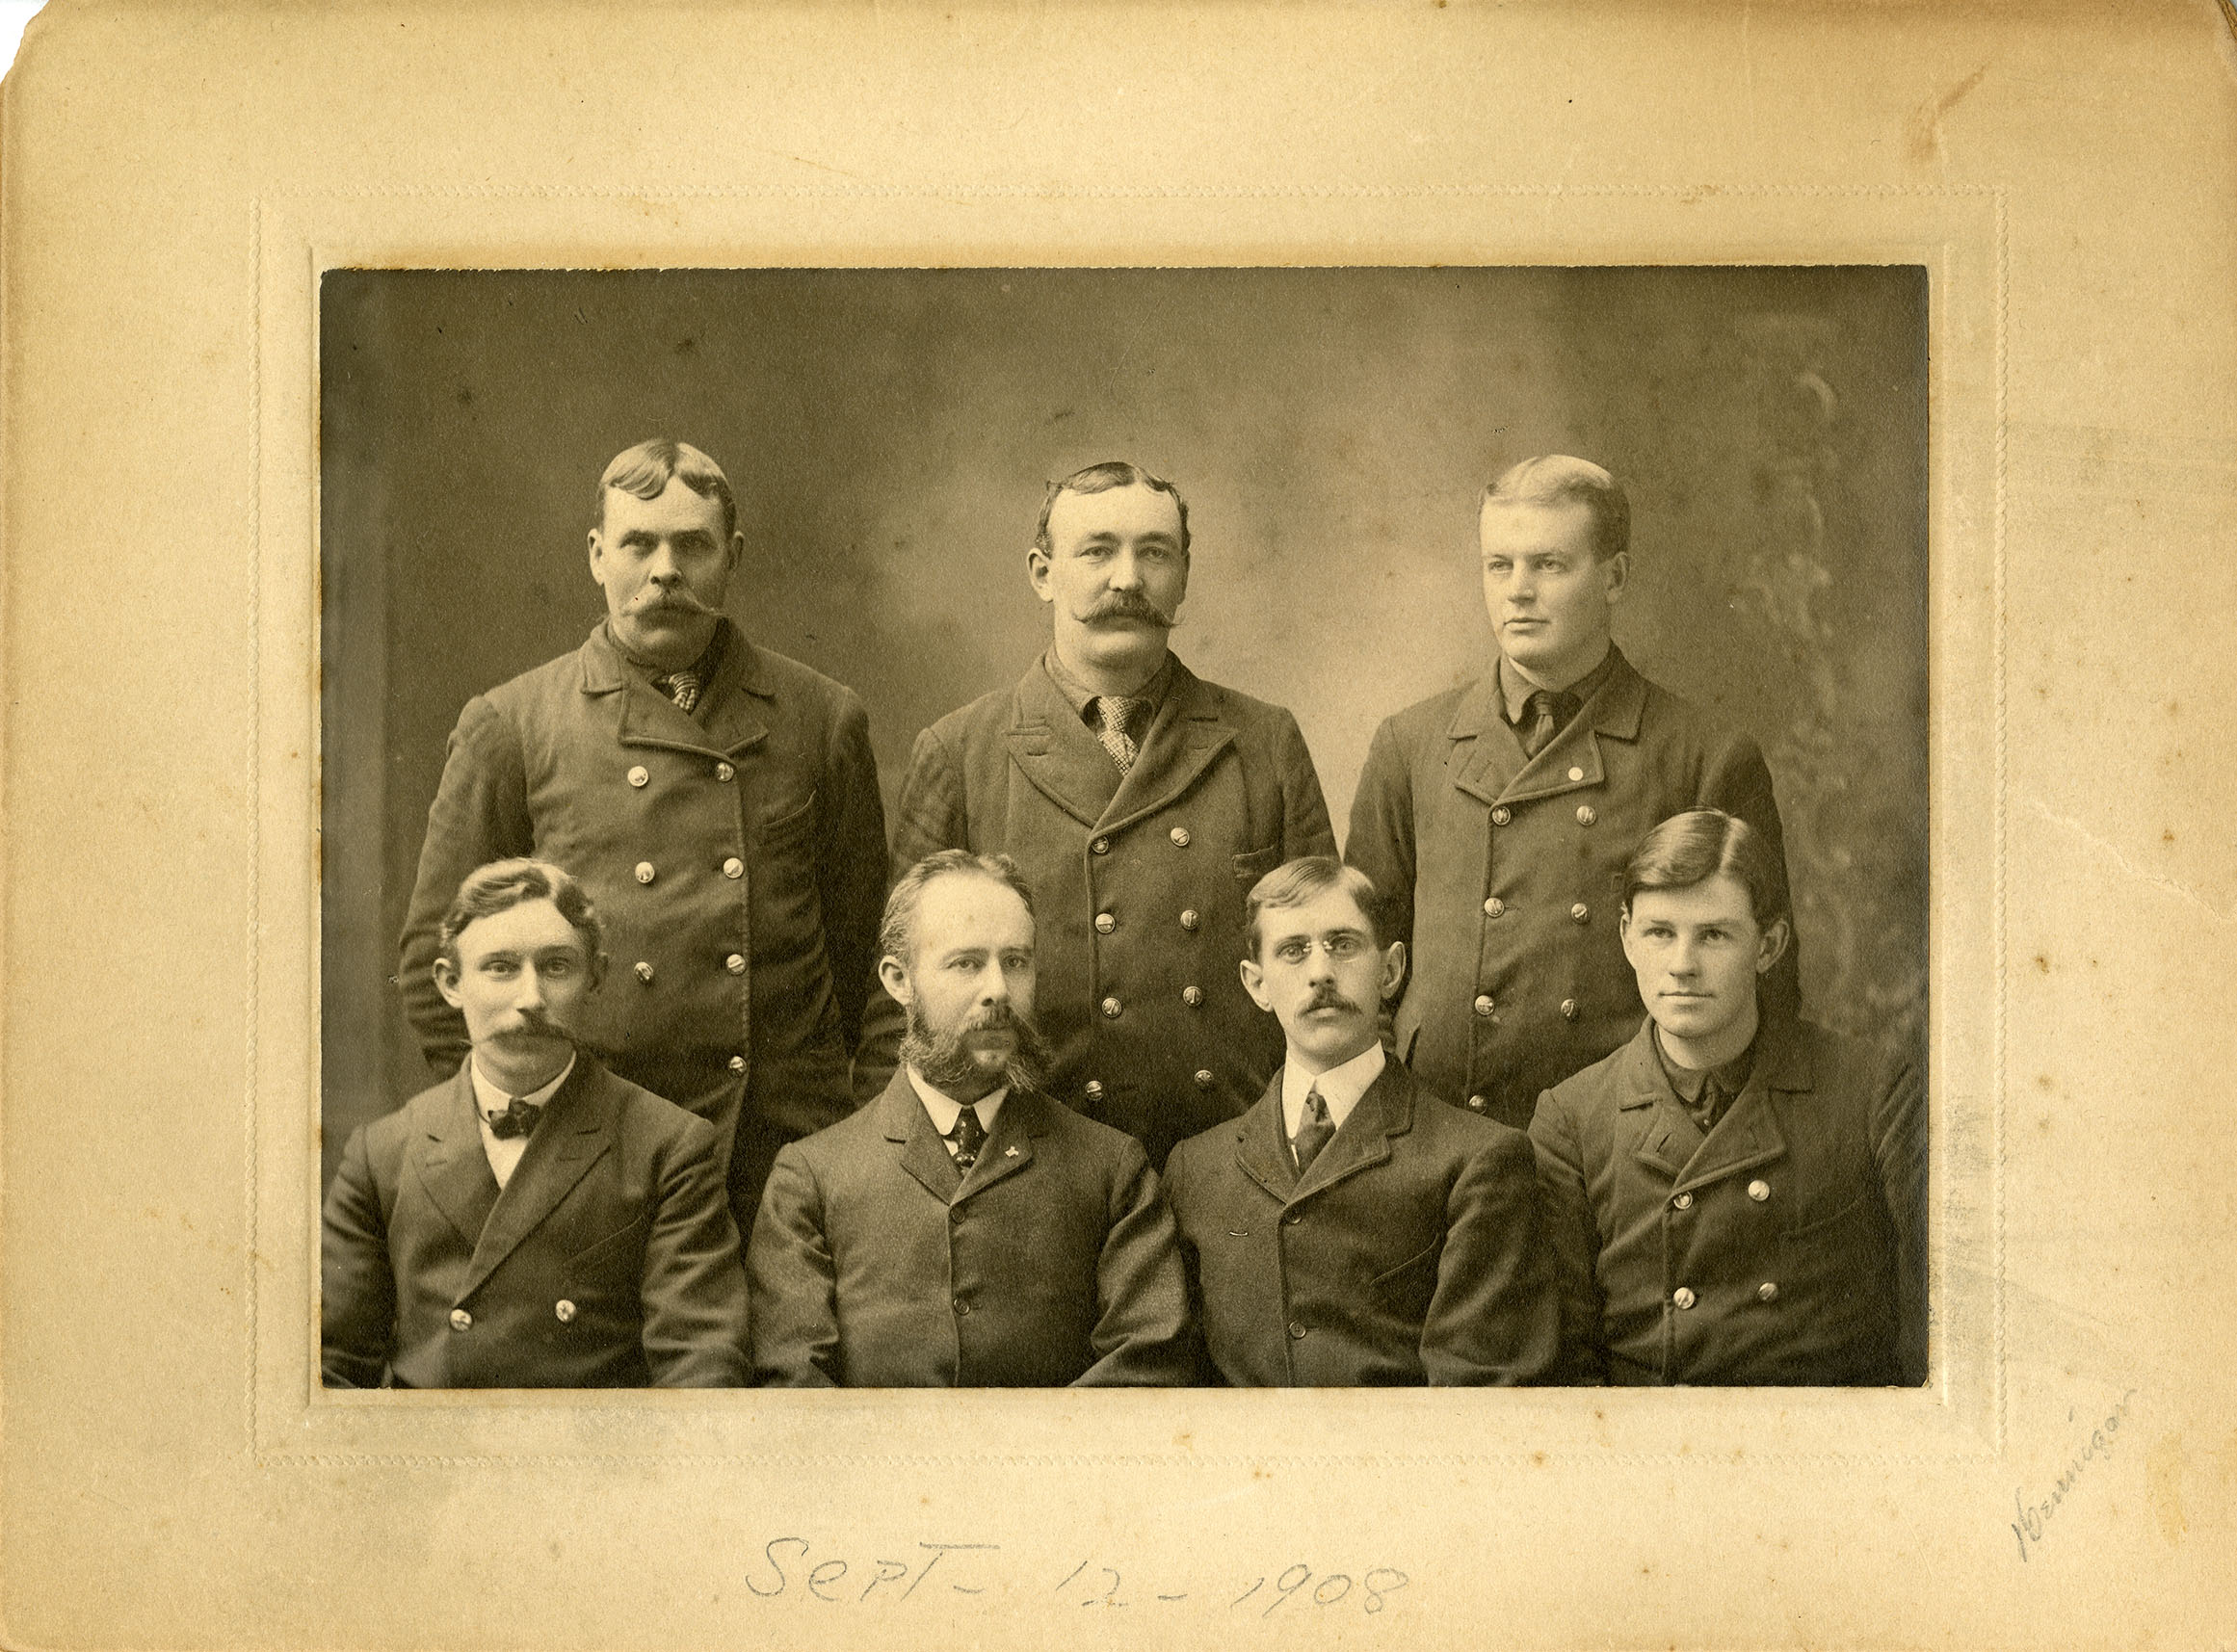 Linemen crew for the Southern New England Telephone Company, Middletown office, 1908 -- these men are identified!